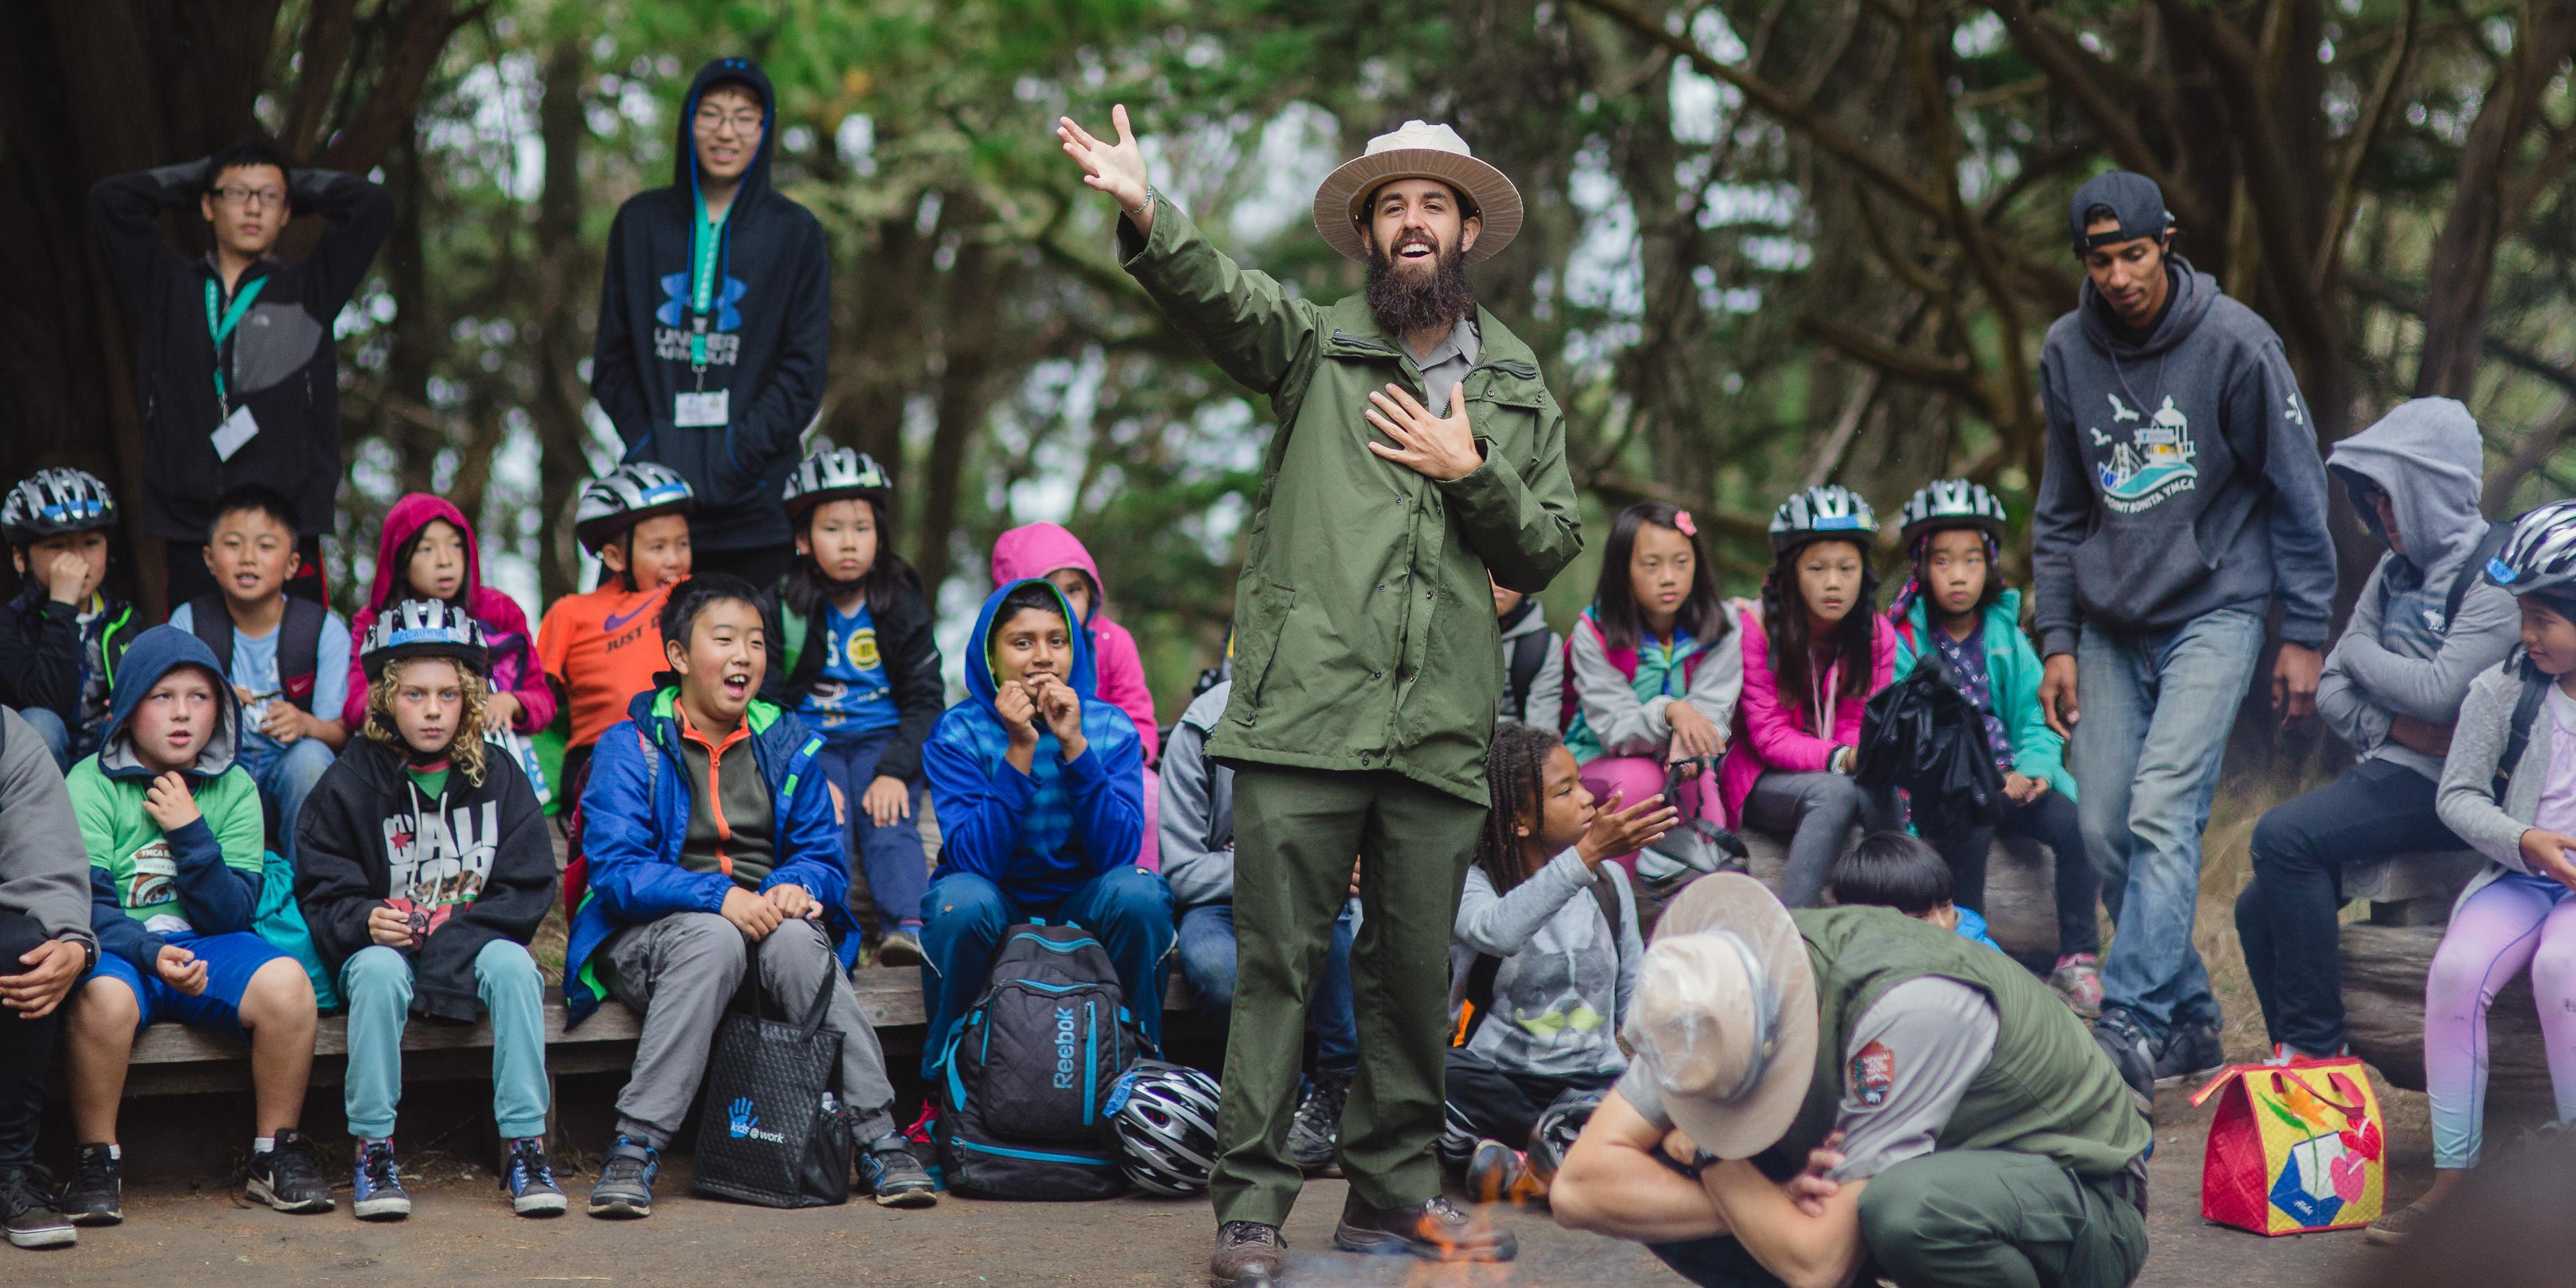 A national park ranger engages the youth